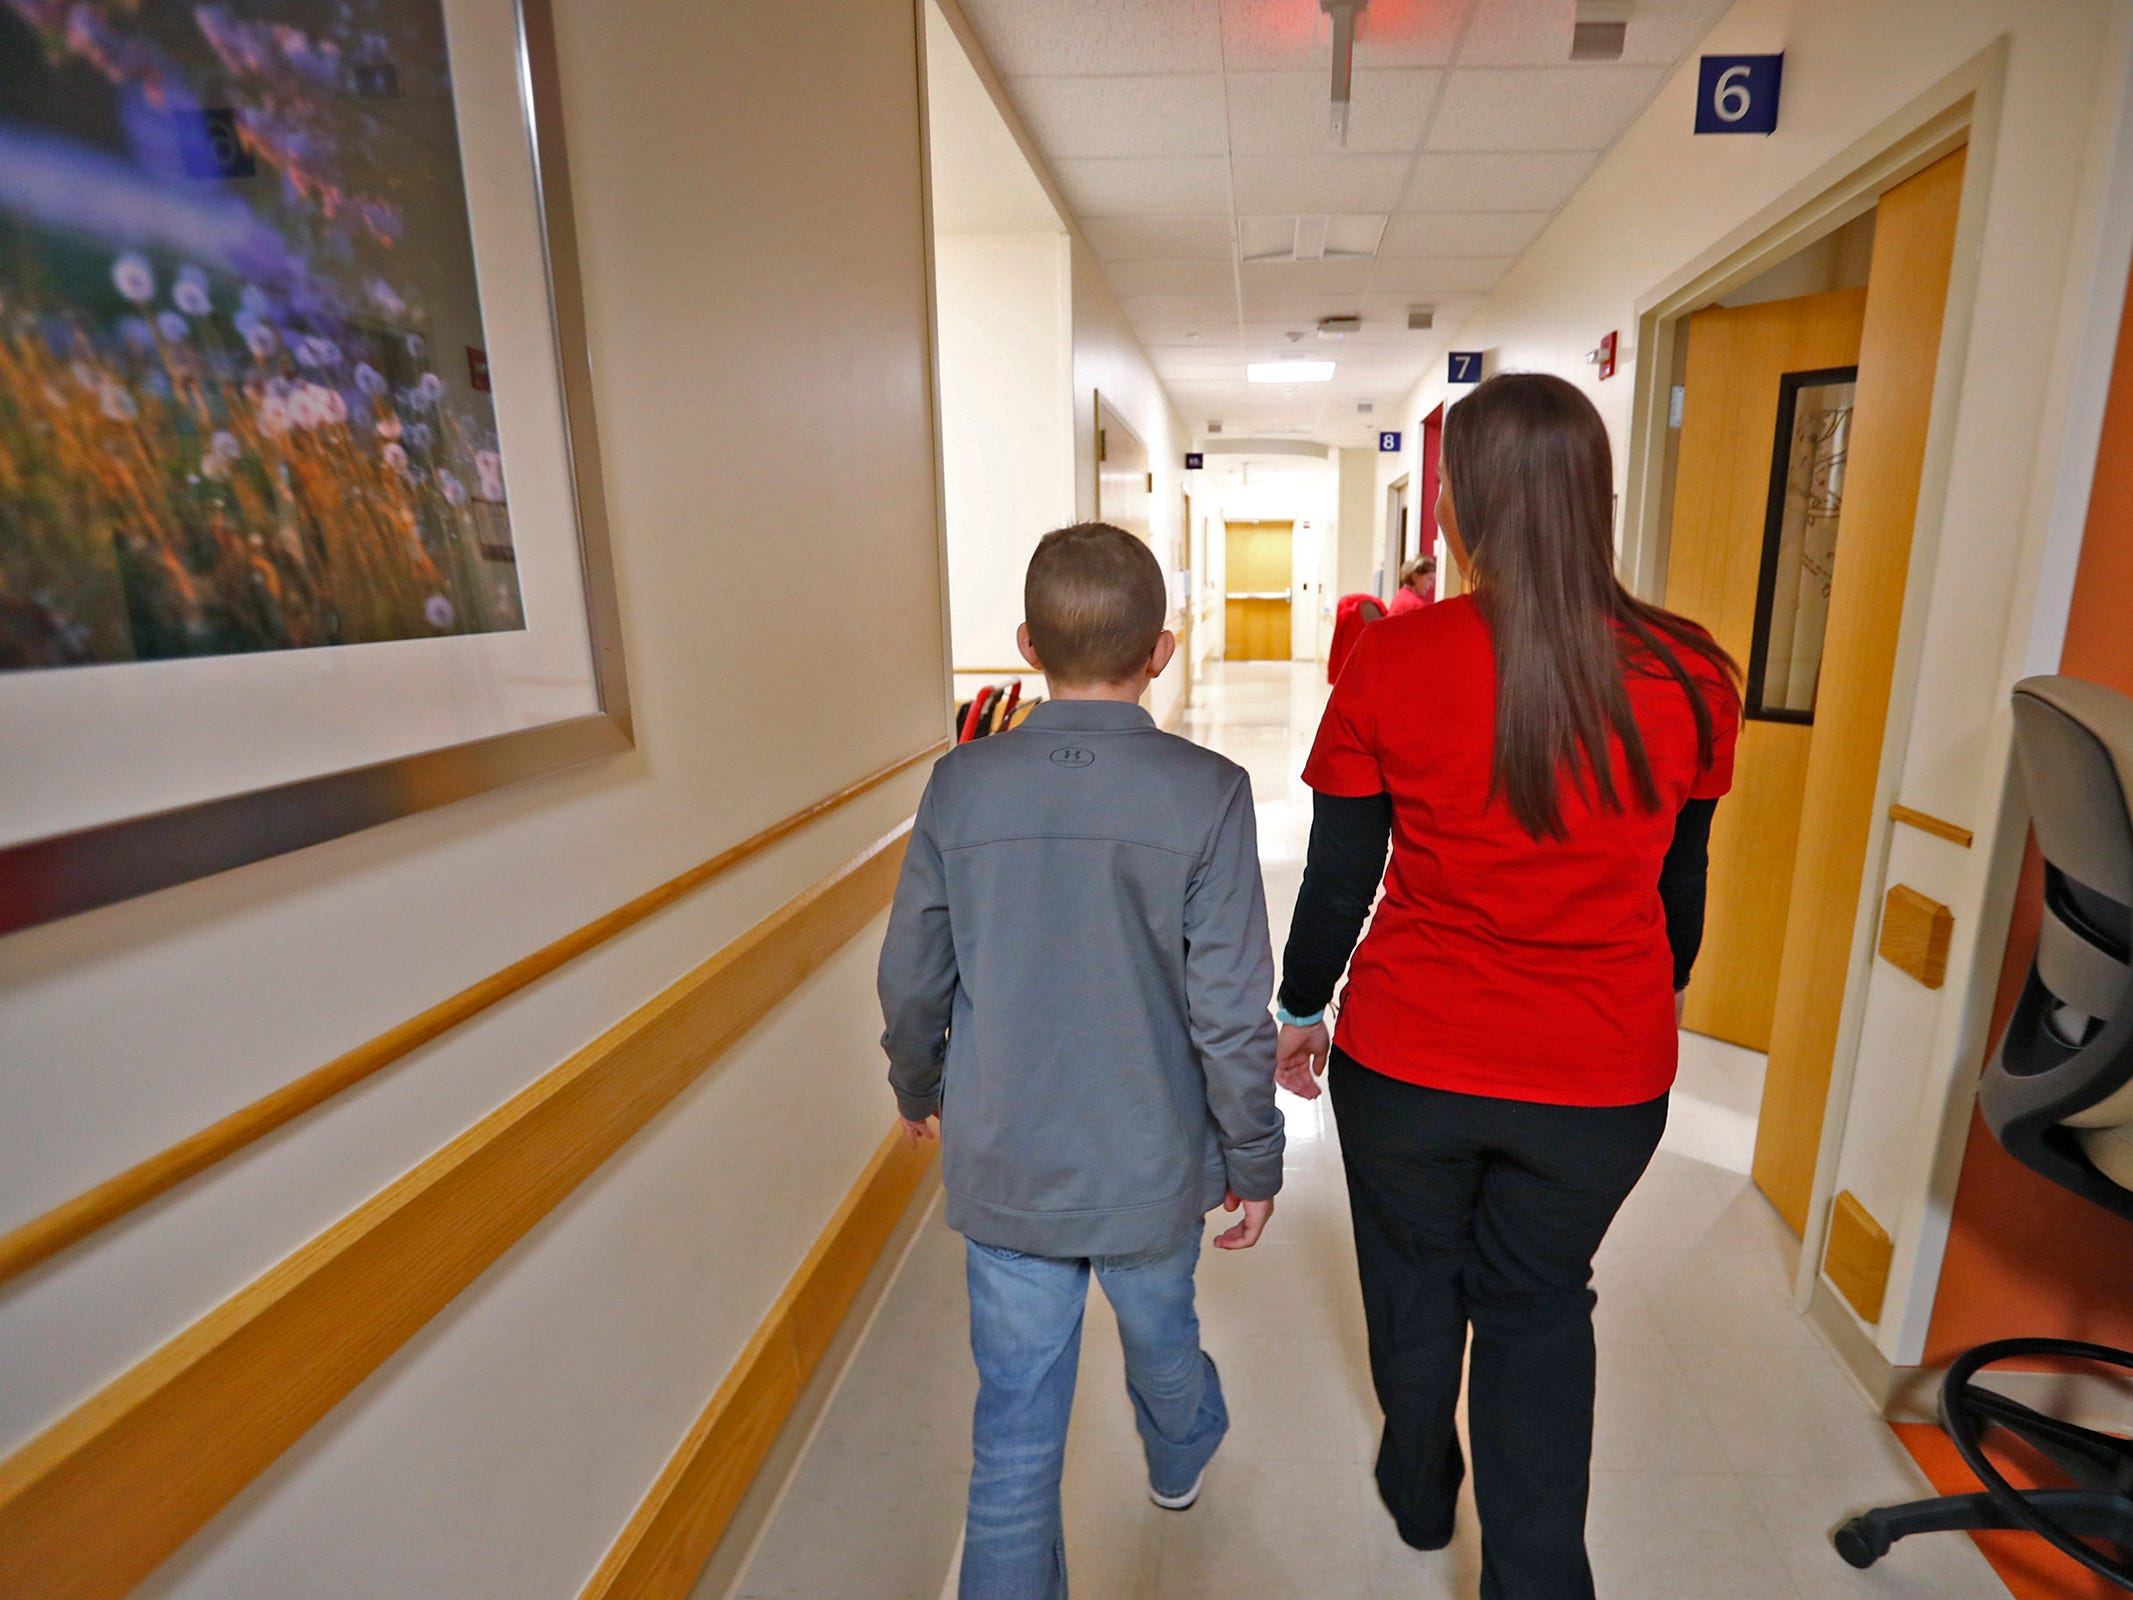 Cameron Kirk, left, walks with his nurse, Rhea Watson at the Center for Pediatric Cancer and Blood Disorders at the Riley Outpatient Center, Friday, April 19, 2019.  Watson was treated for leukemia when she was younger, diagnosed ten years ago, and now is an RN taking care of similar patients, like Cameron who has diagnosed with the same cancer one year ago.  Now Watson is hoping to be the Leukemia & Lymphoma Society Woman of the Year, in a fundraising effort which ends May 18, 2019.